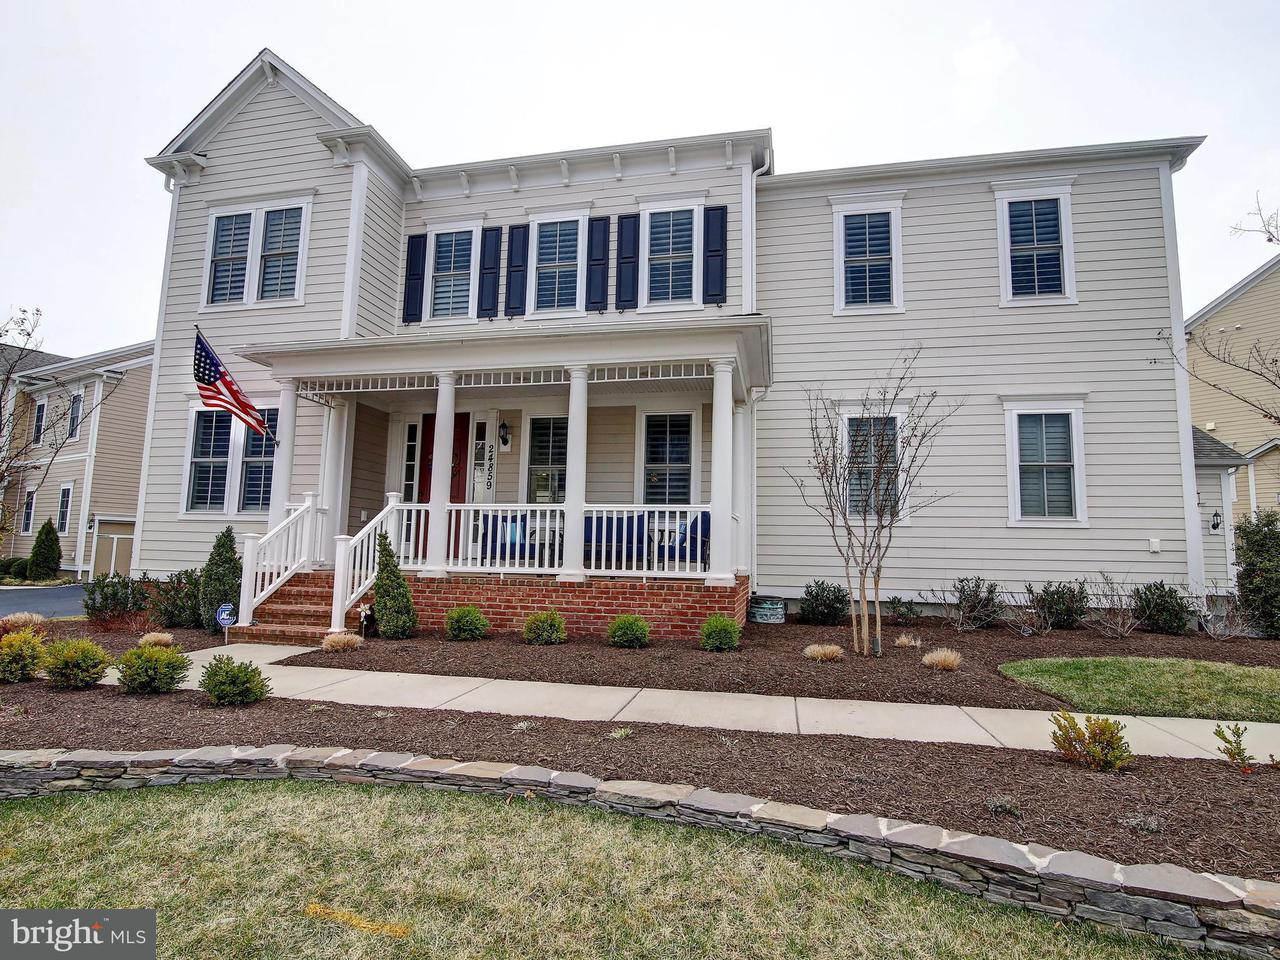 Single Family Home for Sale at 24859 Quimby Oaks Place 24859 Quimby Oaks Place Aldie, Virginia 20105 United States